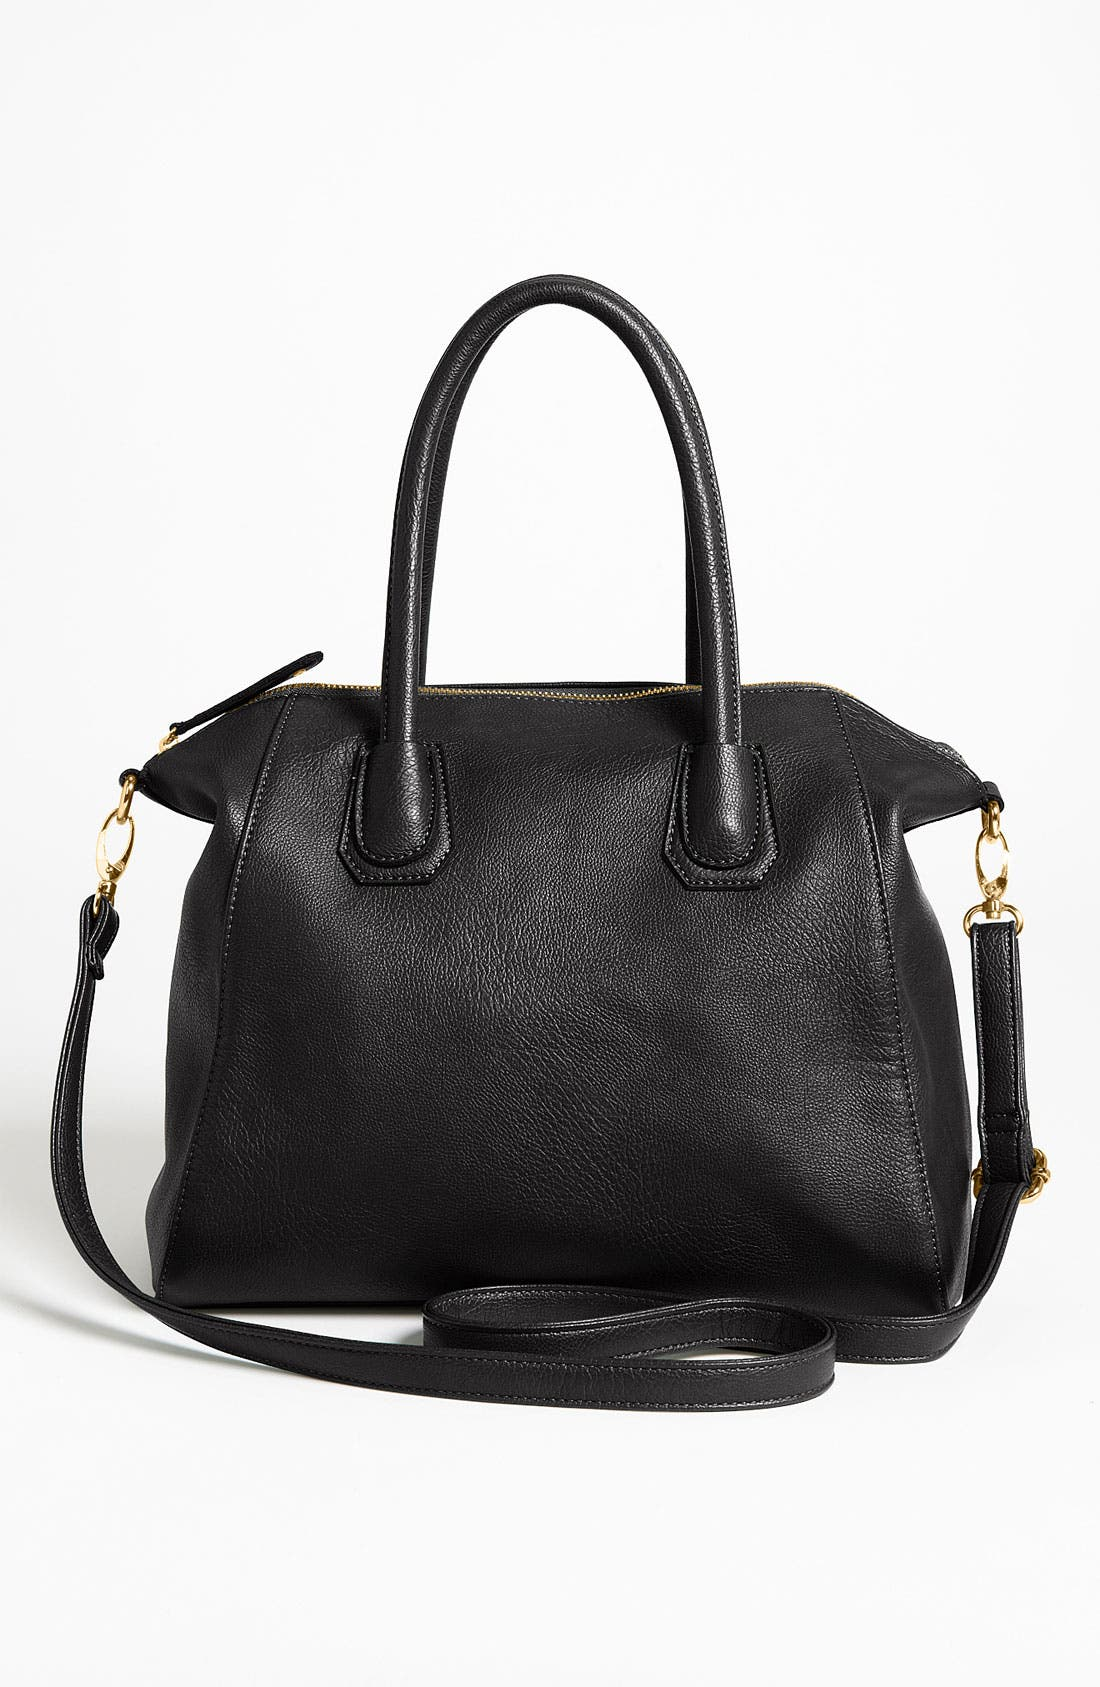 Main Image - Street Level Faux Leather Satchel